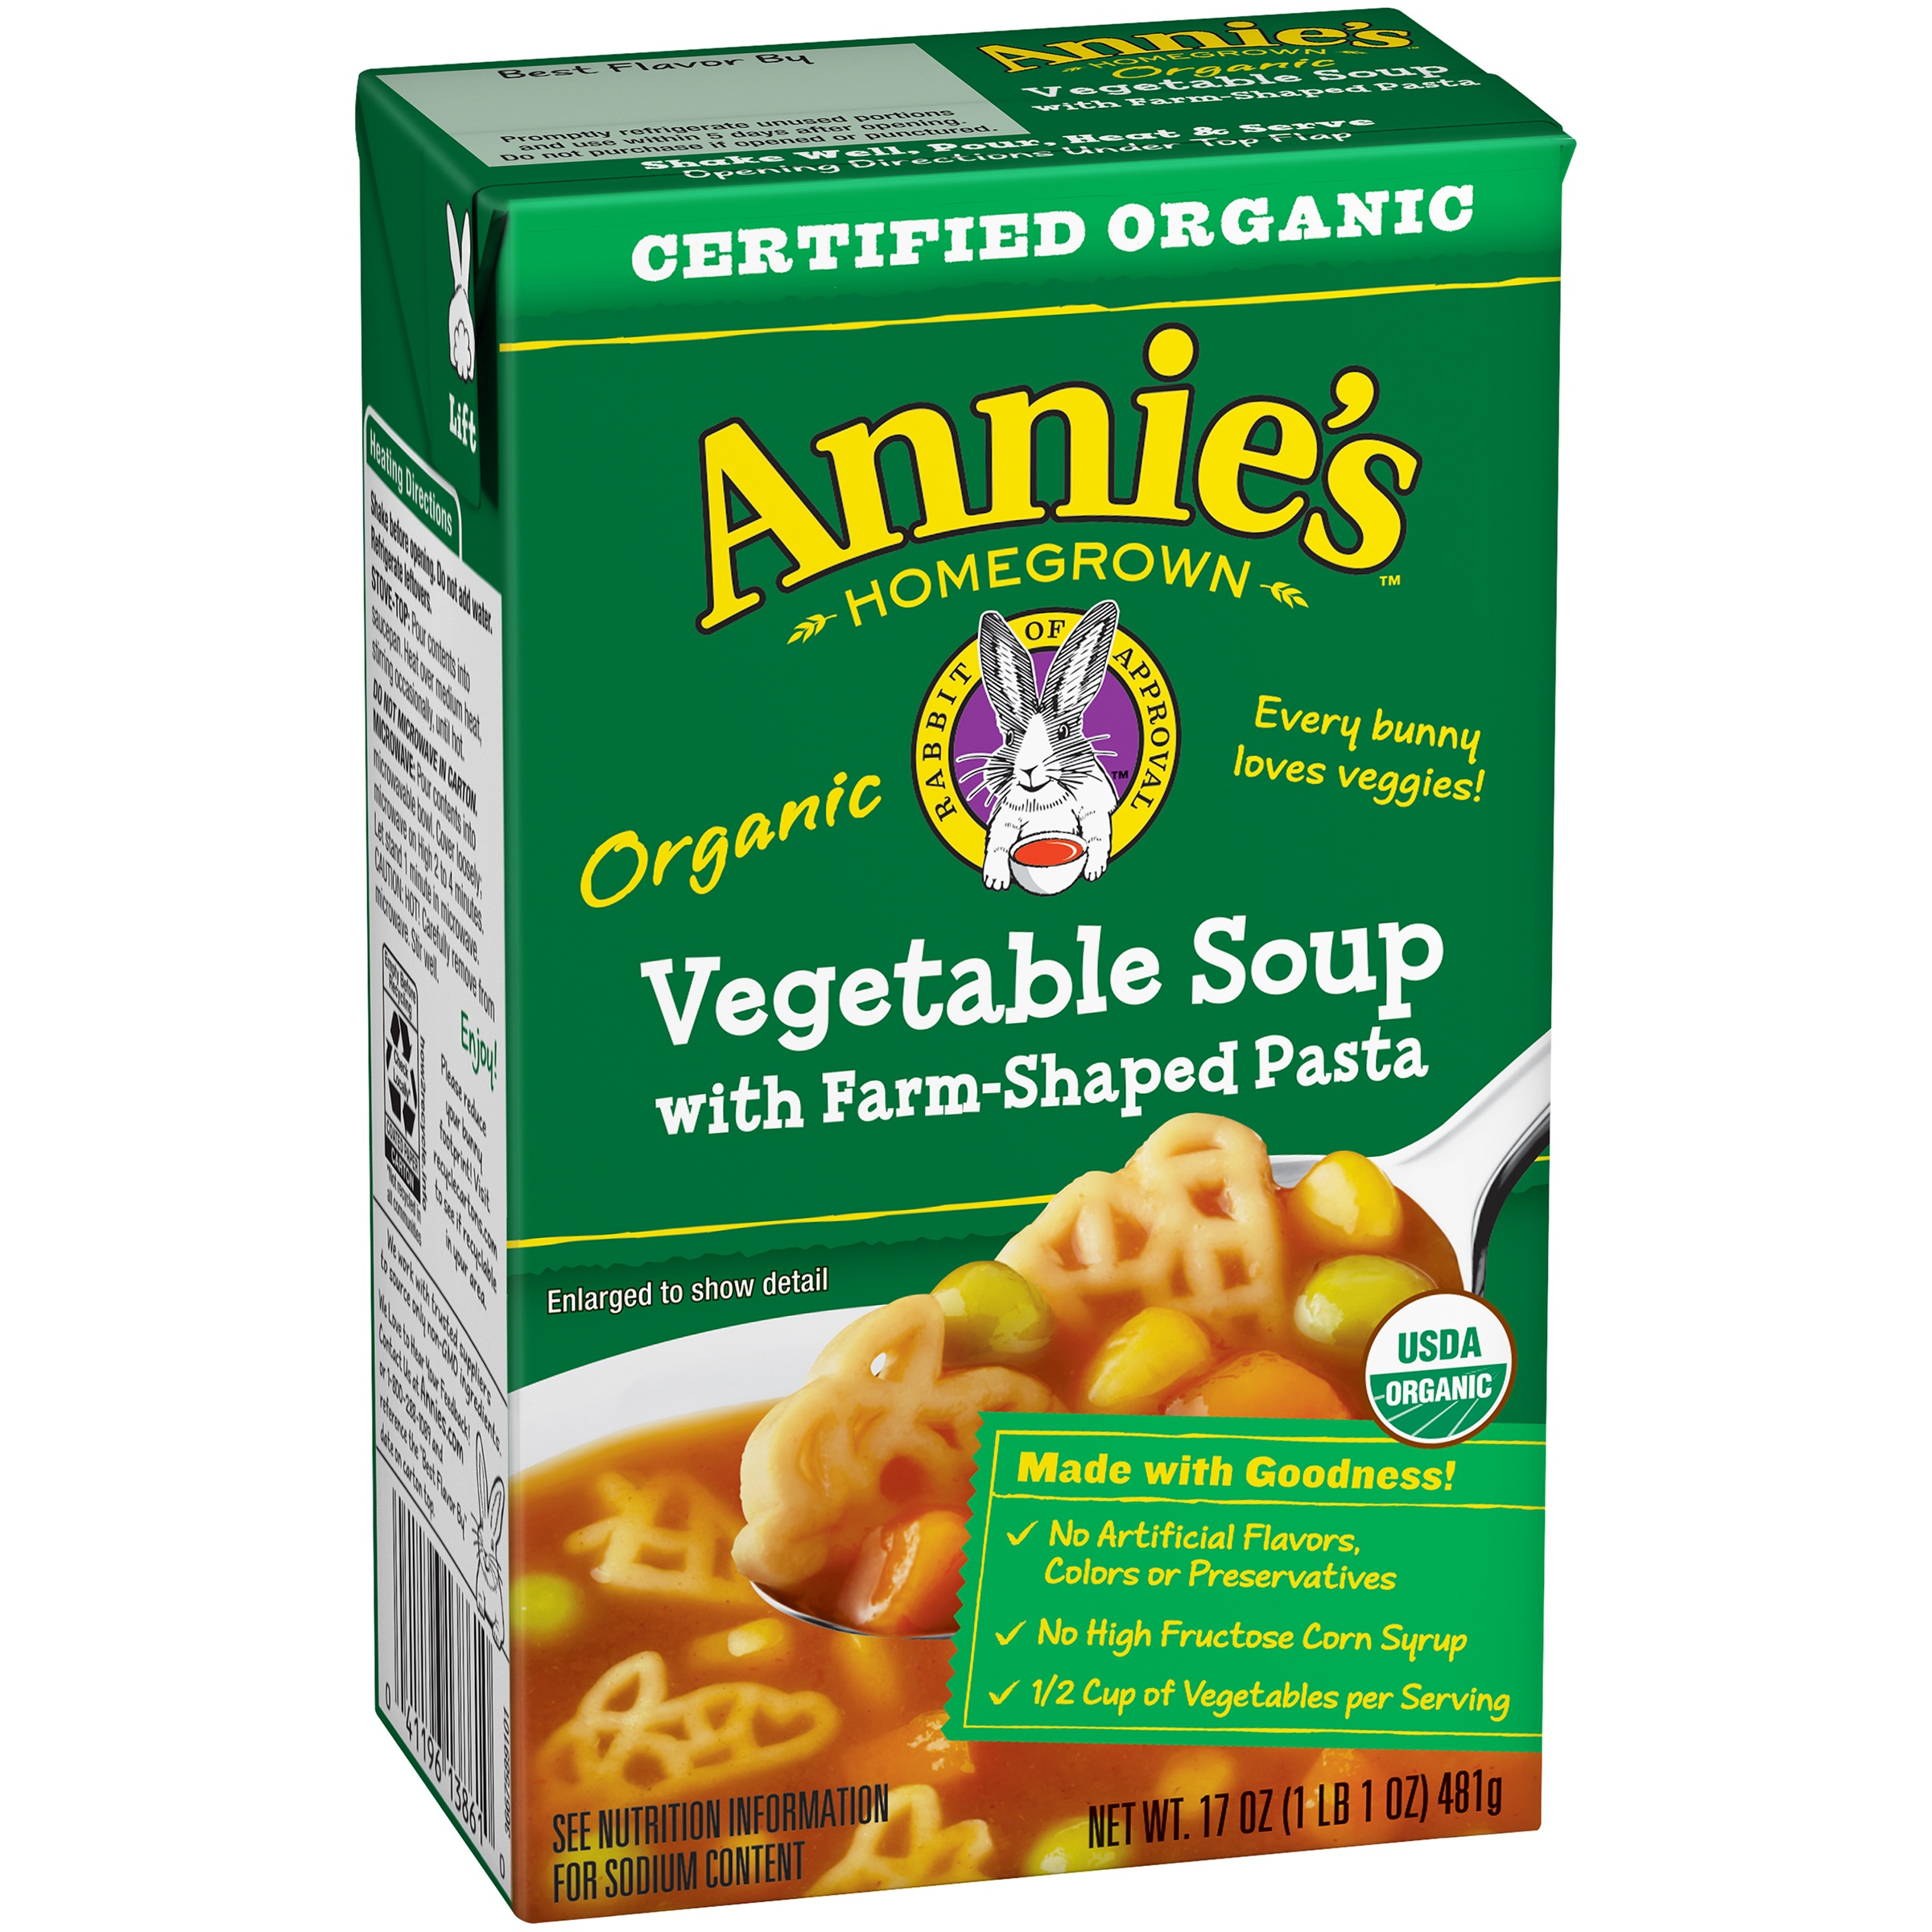 Annie's Organic Vegetable Soup with Farm-Shaped Pasta 17 oz. Aseptic Pack by Annie's Inc.